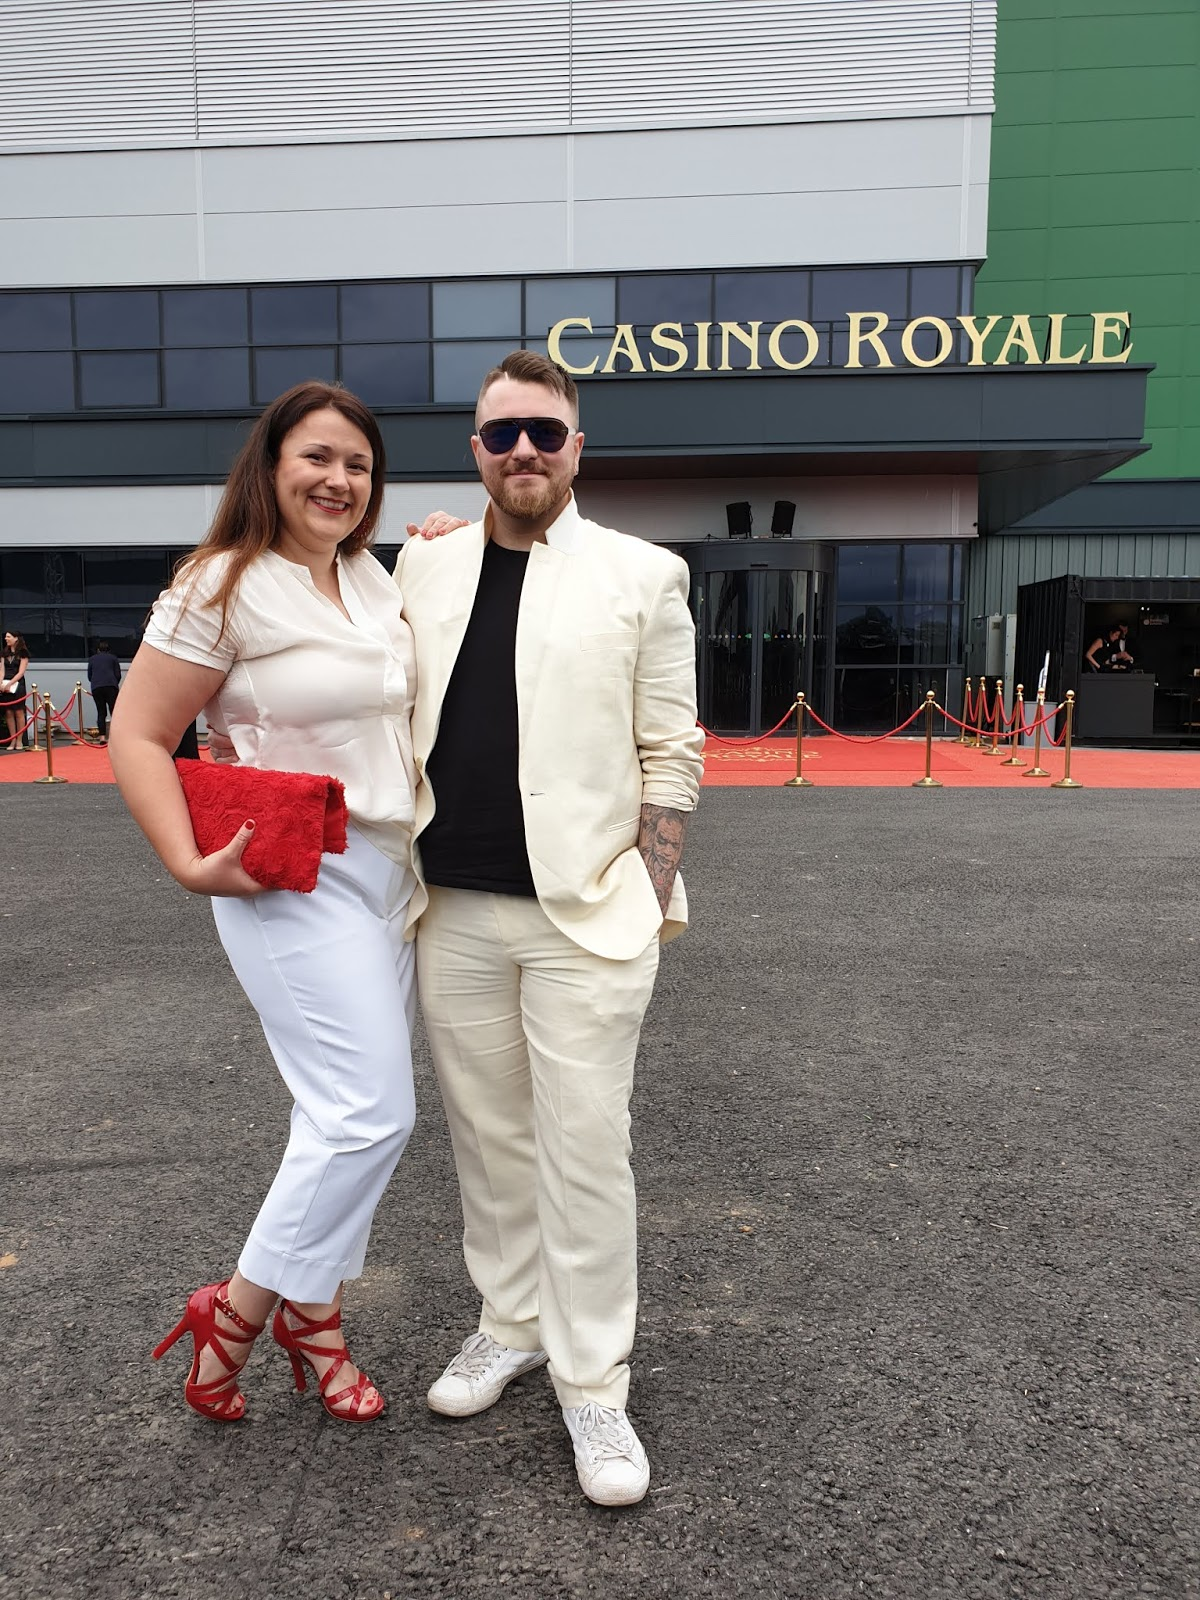 wearing all white at casino royale event